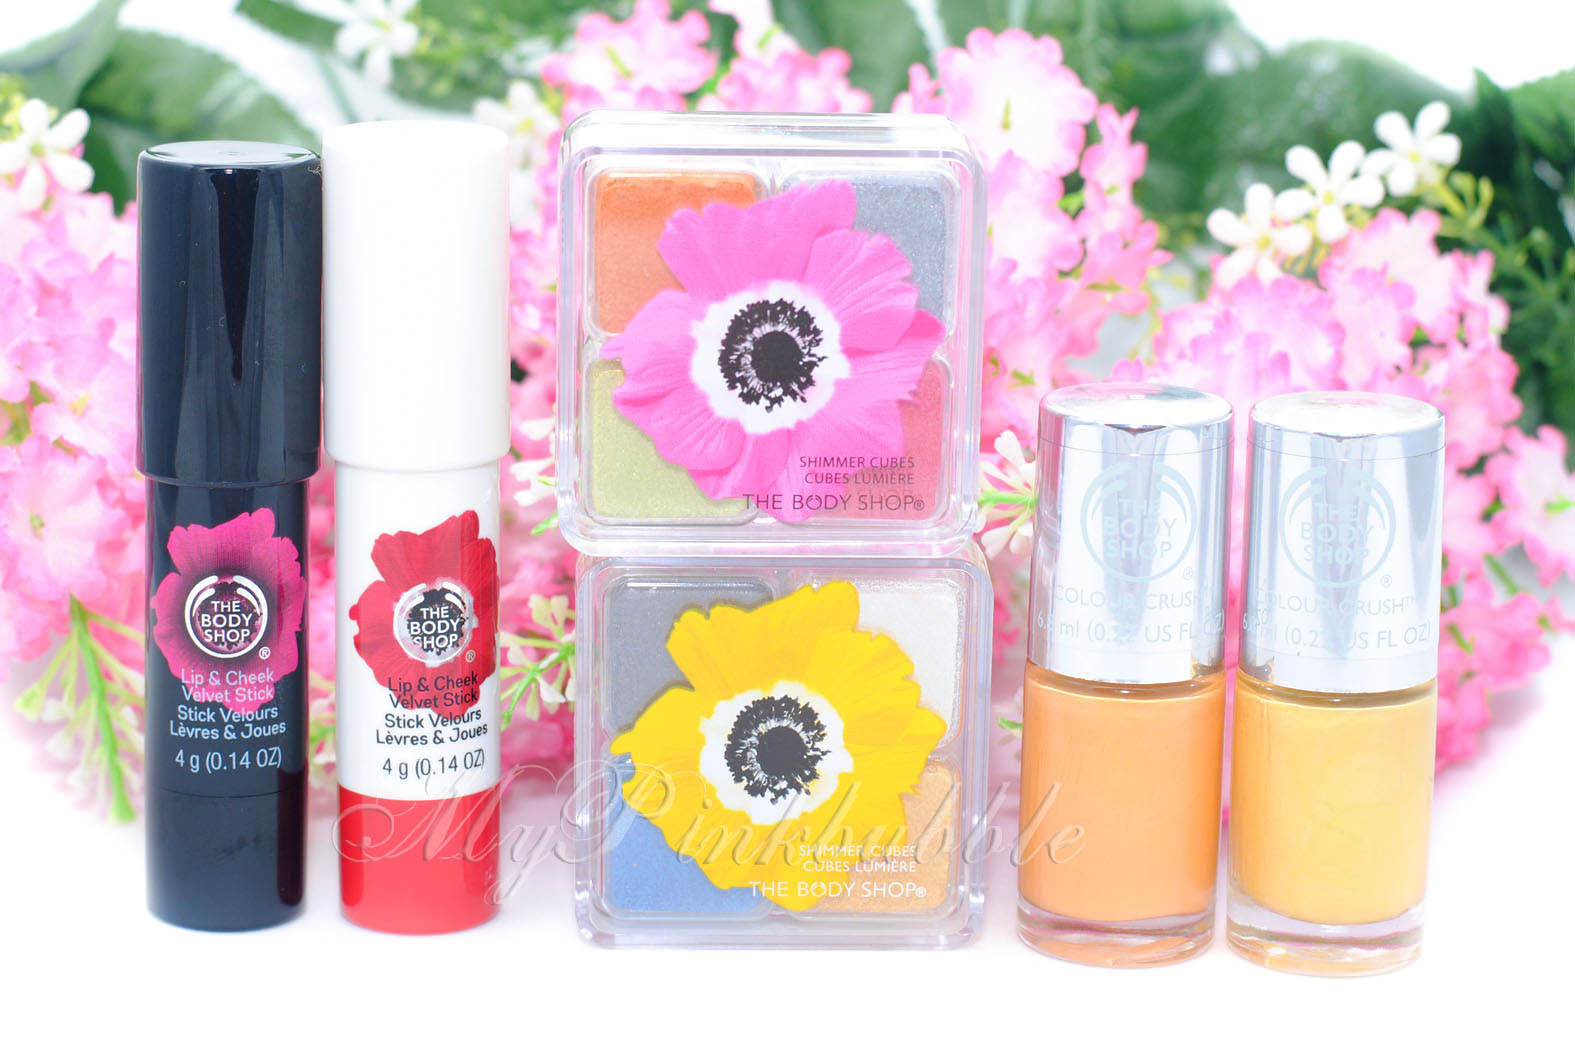 Coleccion poppy body shop